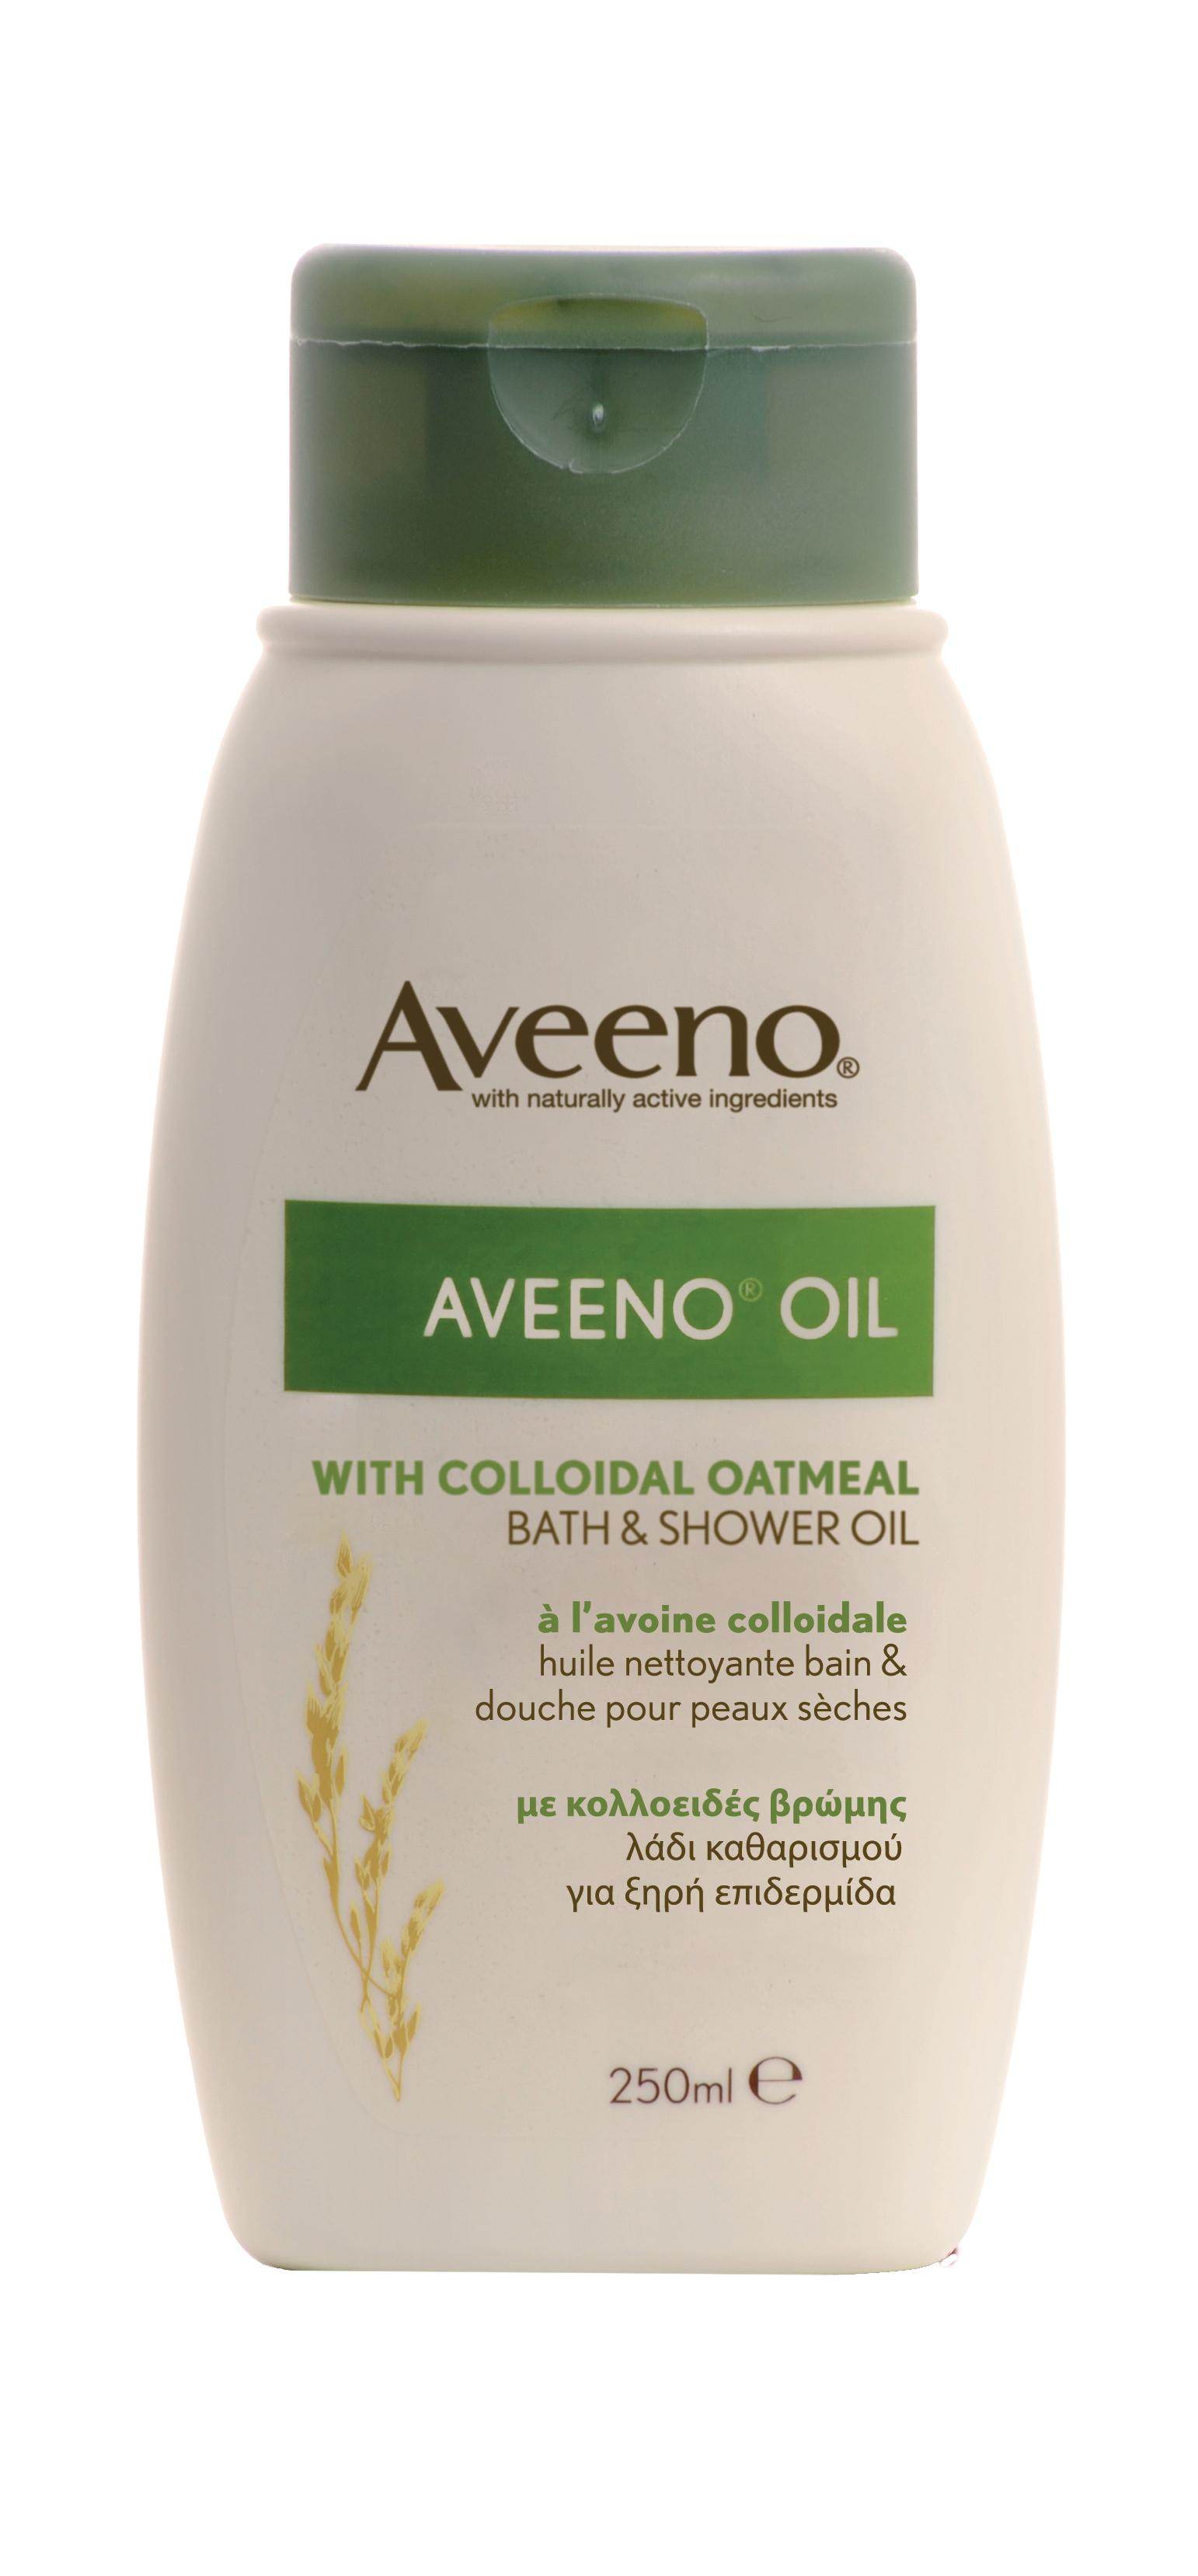 aveeno oil bath amp shower oil 250ml amazon co uk beauty aveeno daily moisturising bath and shower oil 300 ml ebay